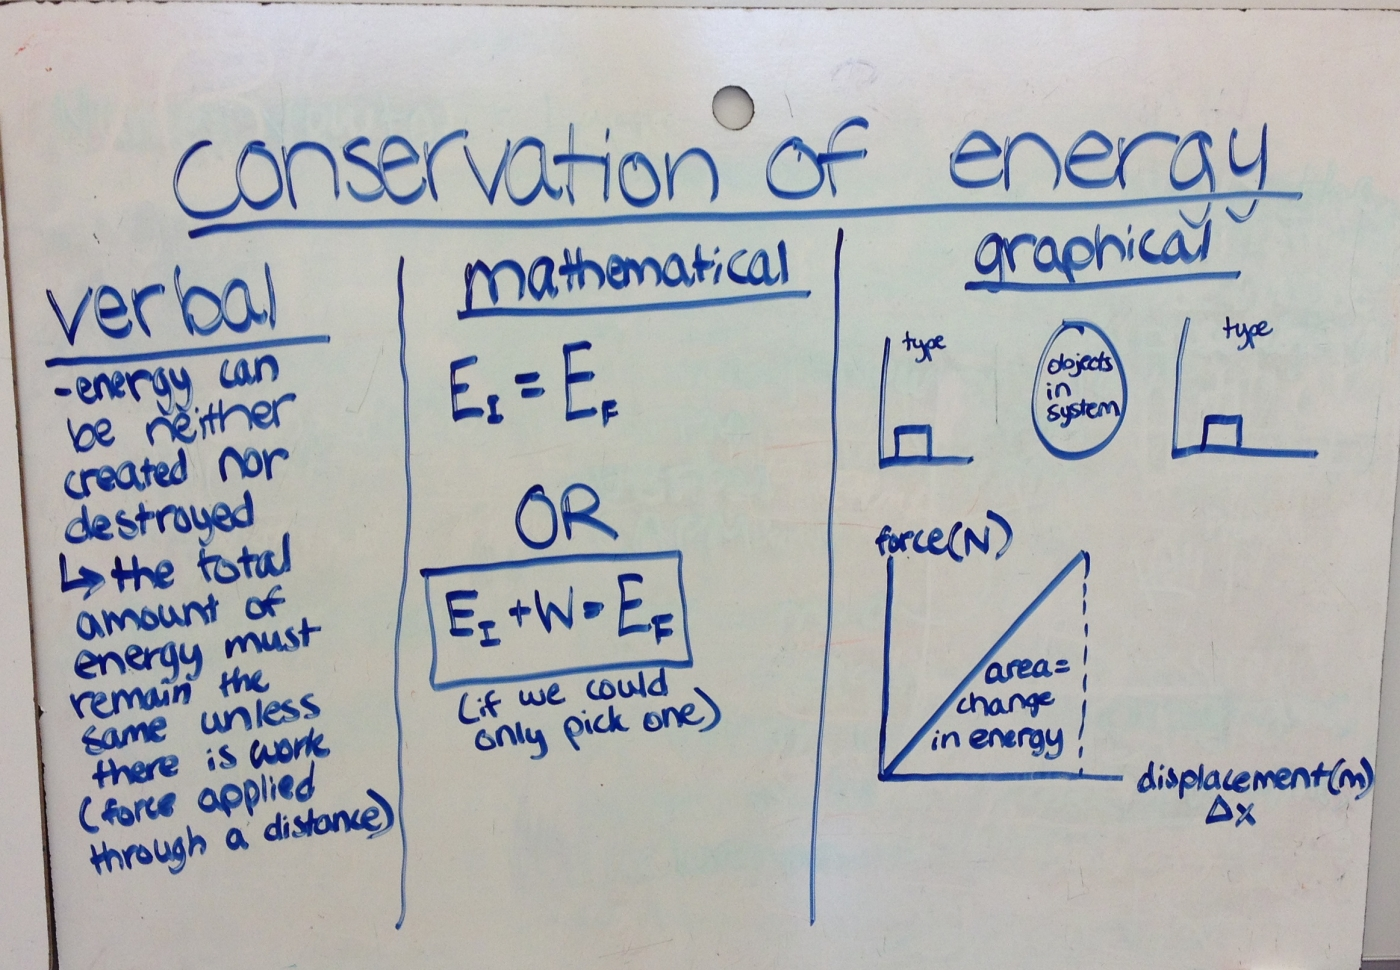 conservation of energy board